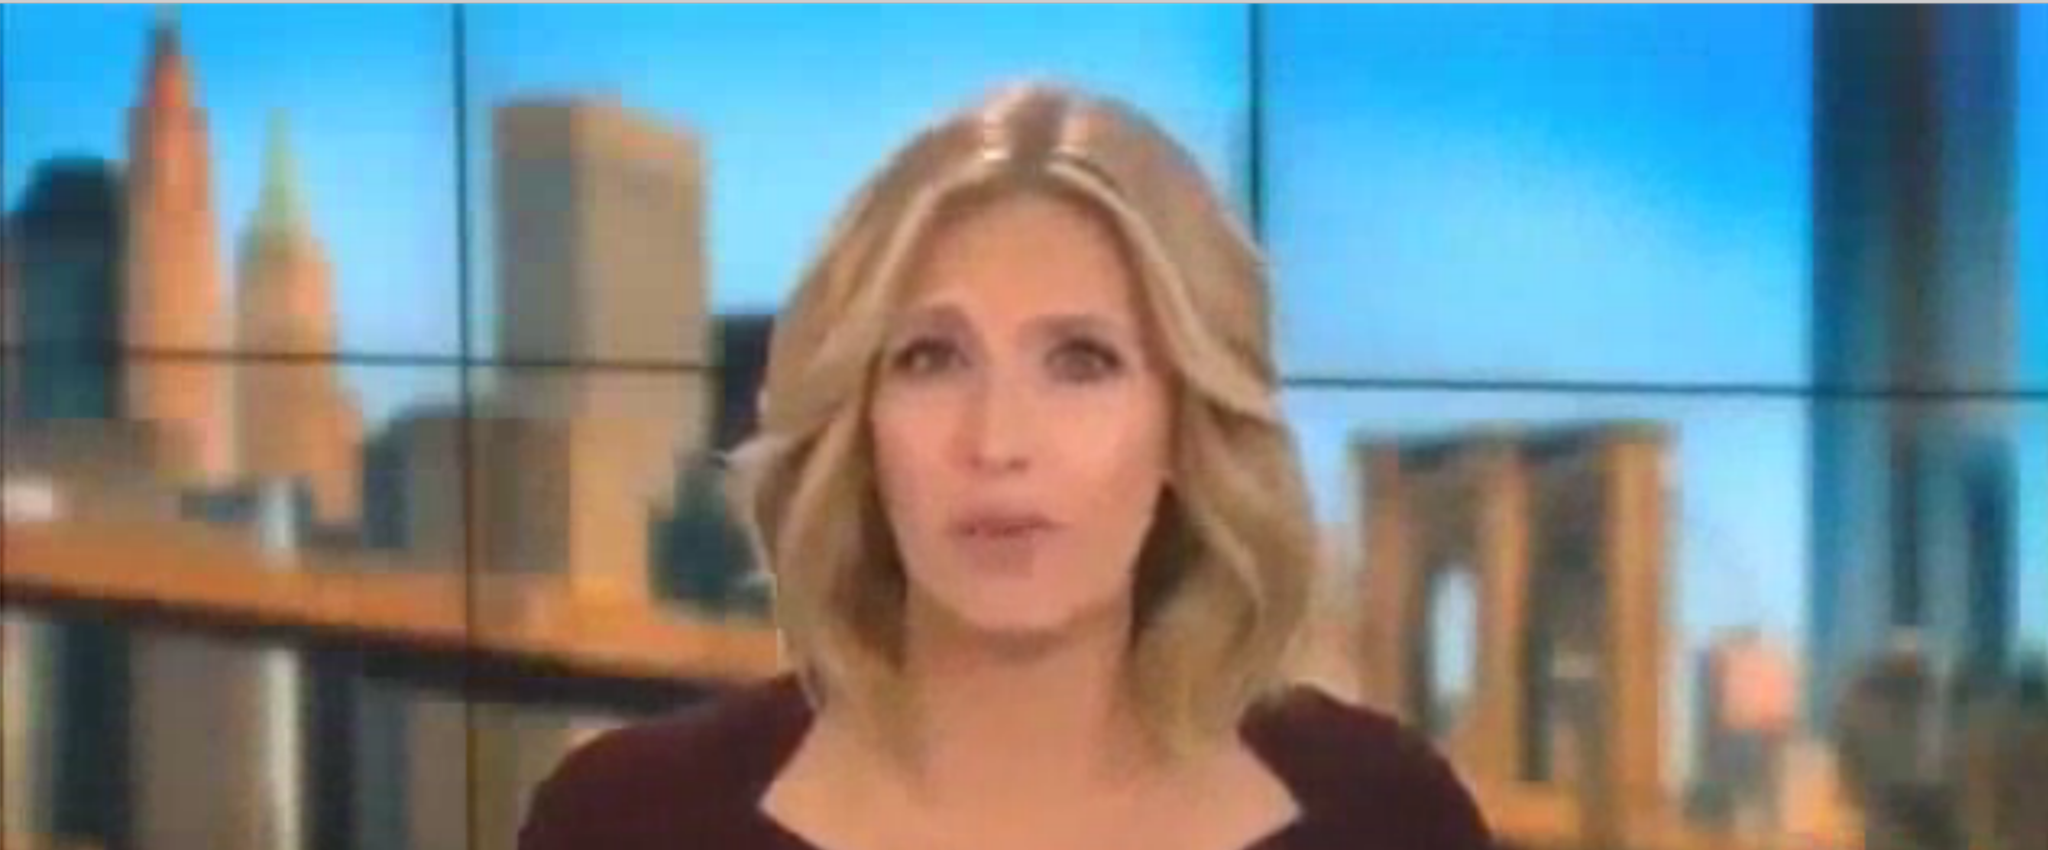 CNN news anchor passes out on live TV - Chicago Tribune - photo#3